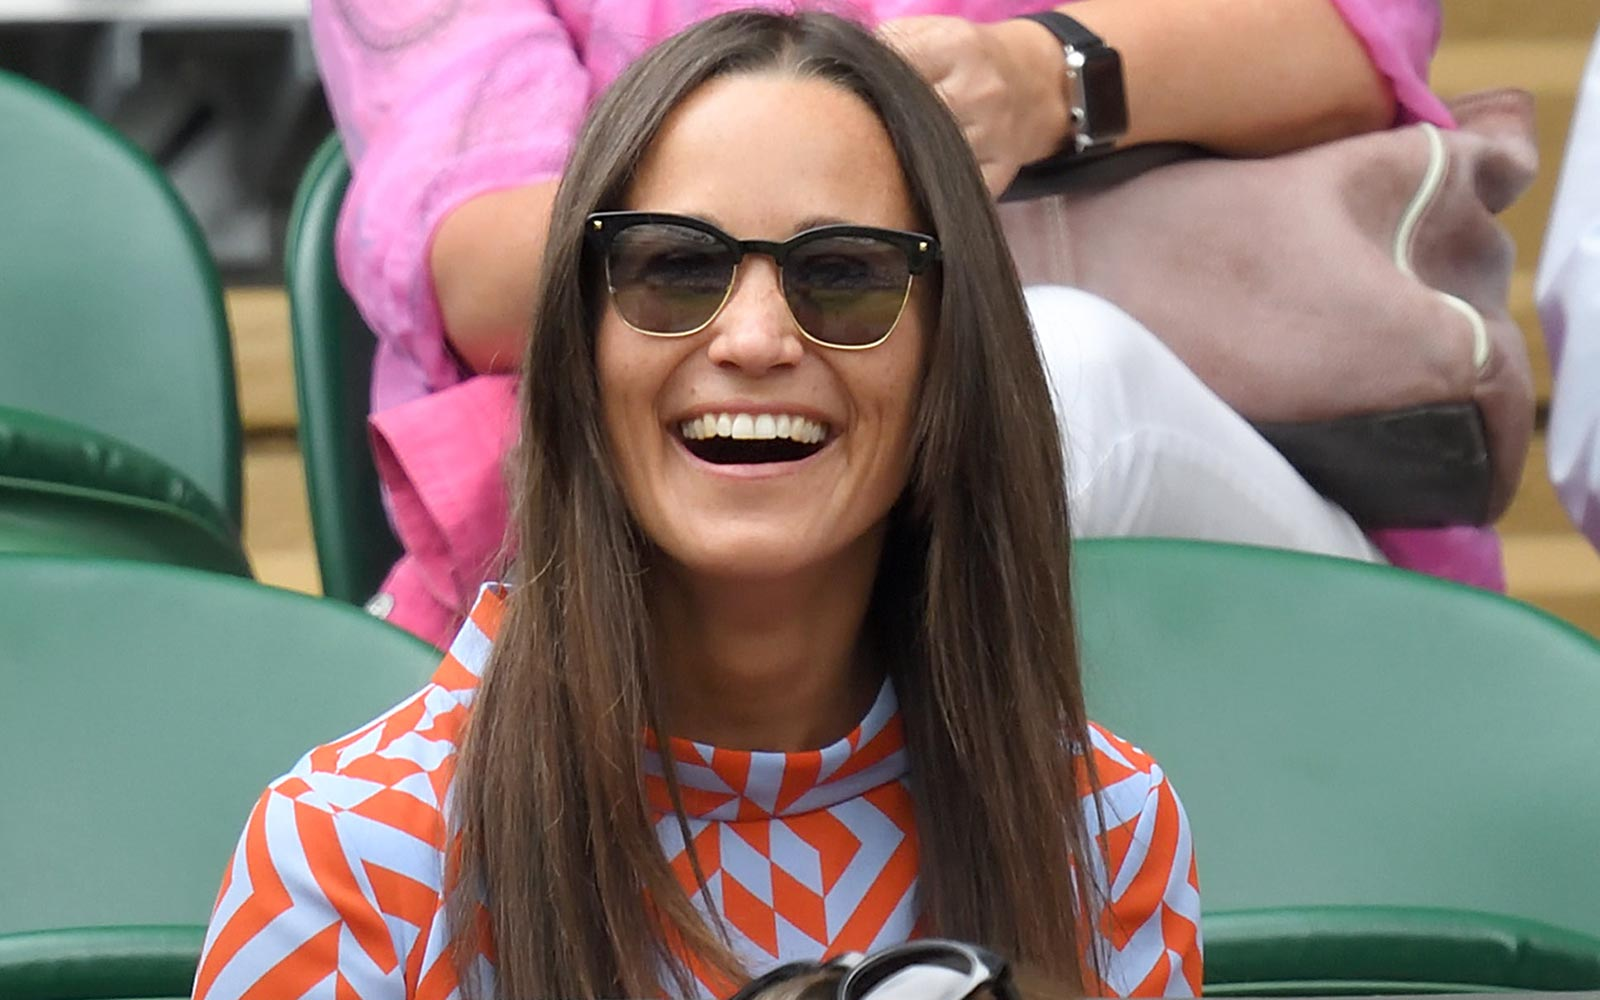 Pippa Middleton's Breakfast Recommendation Is Making People Angry